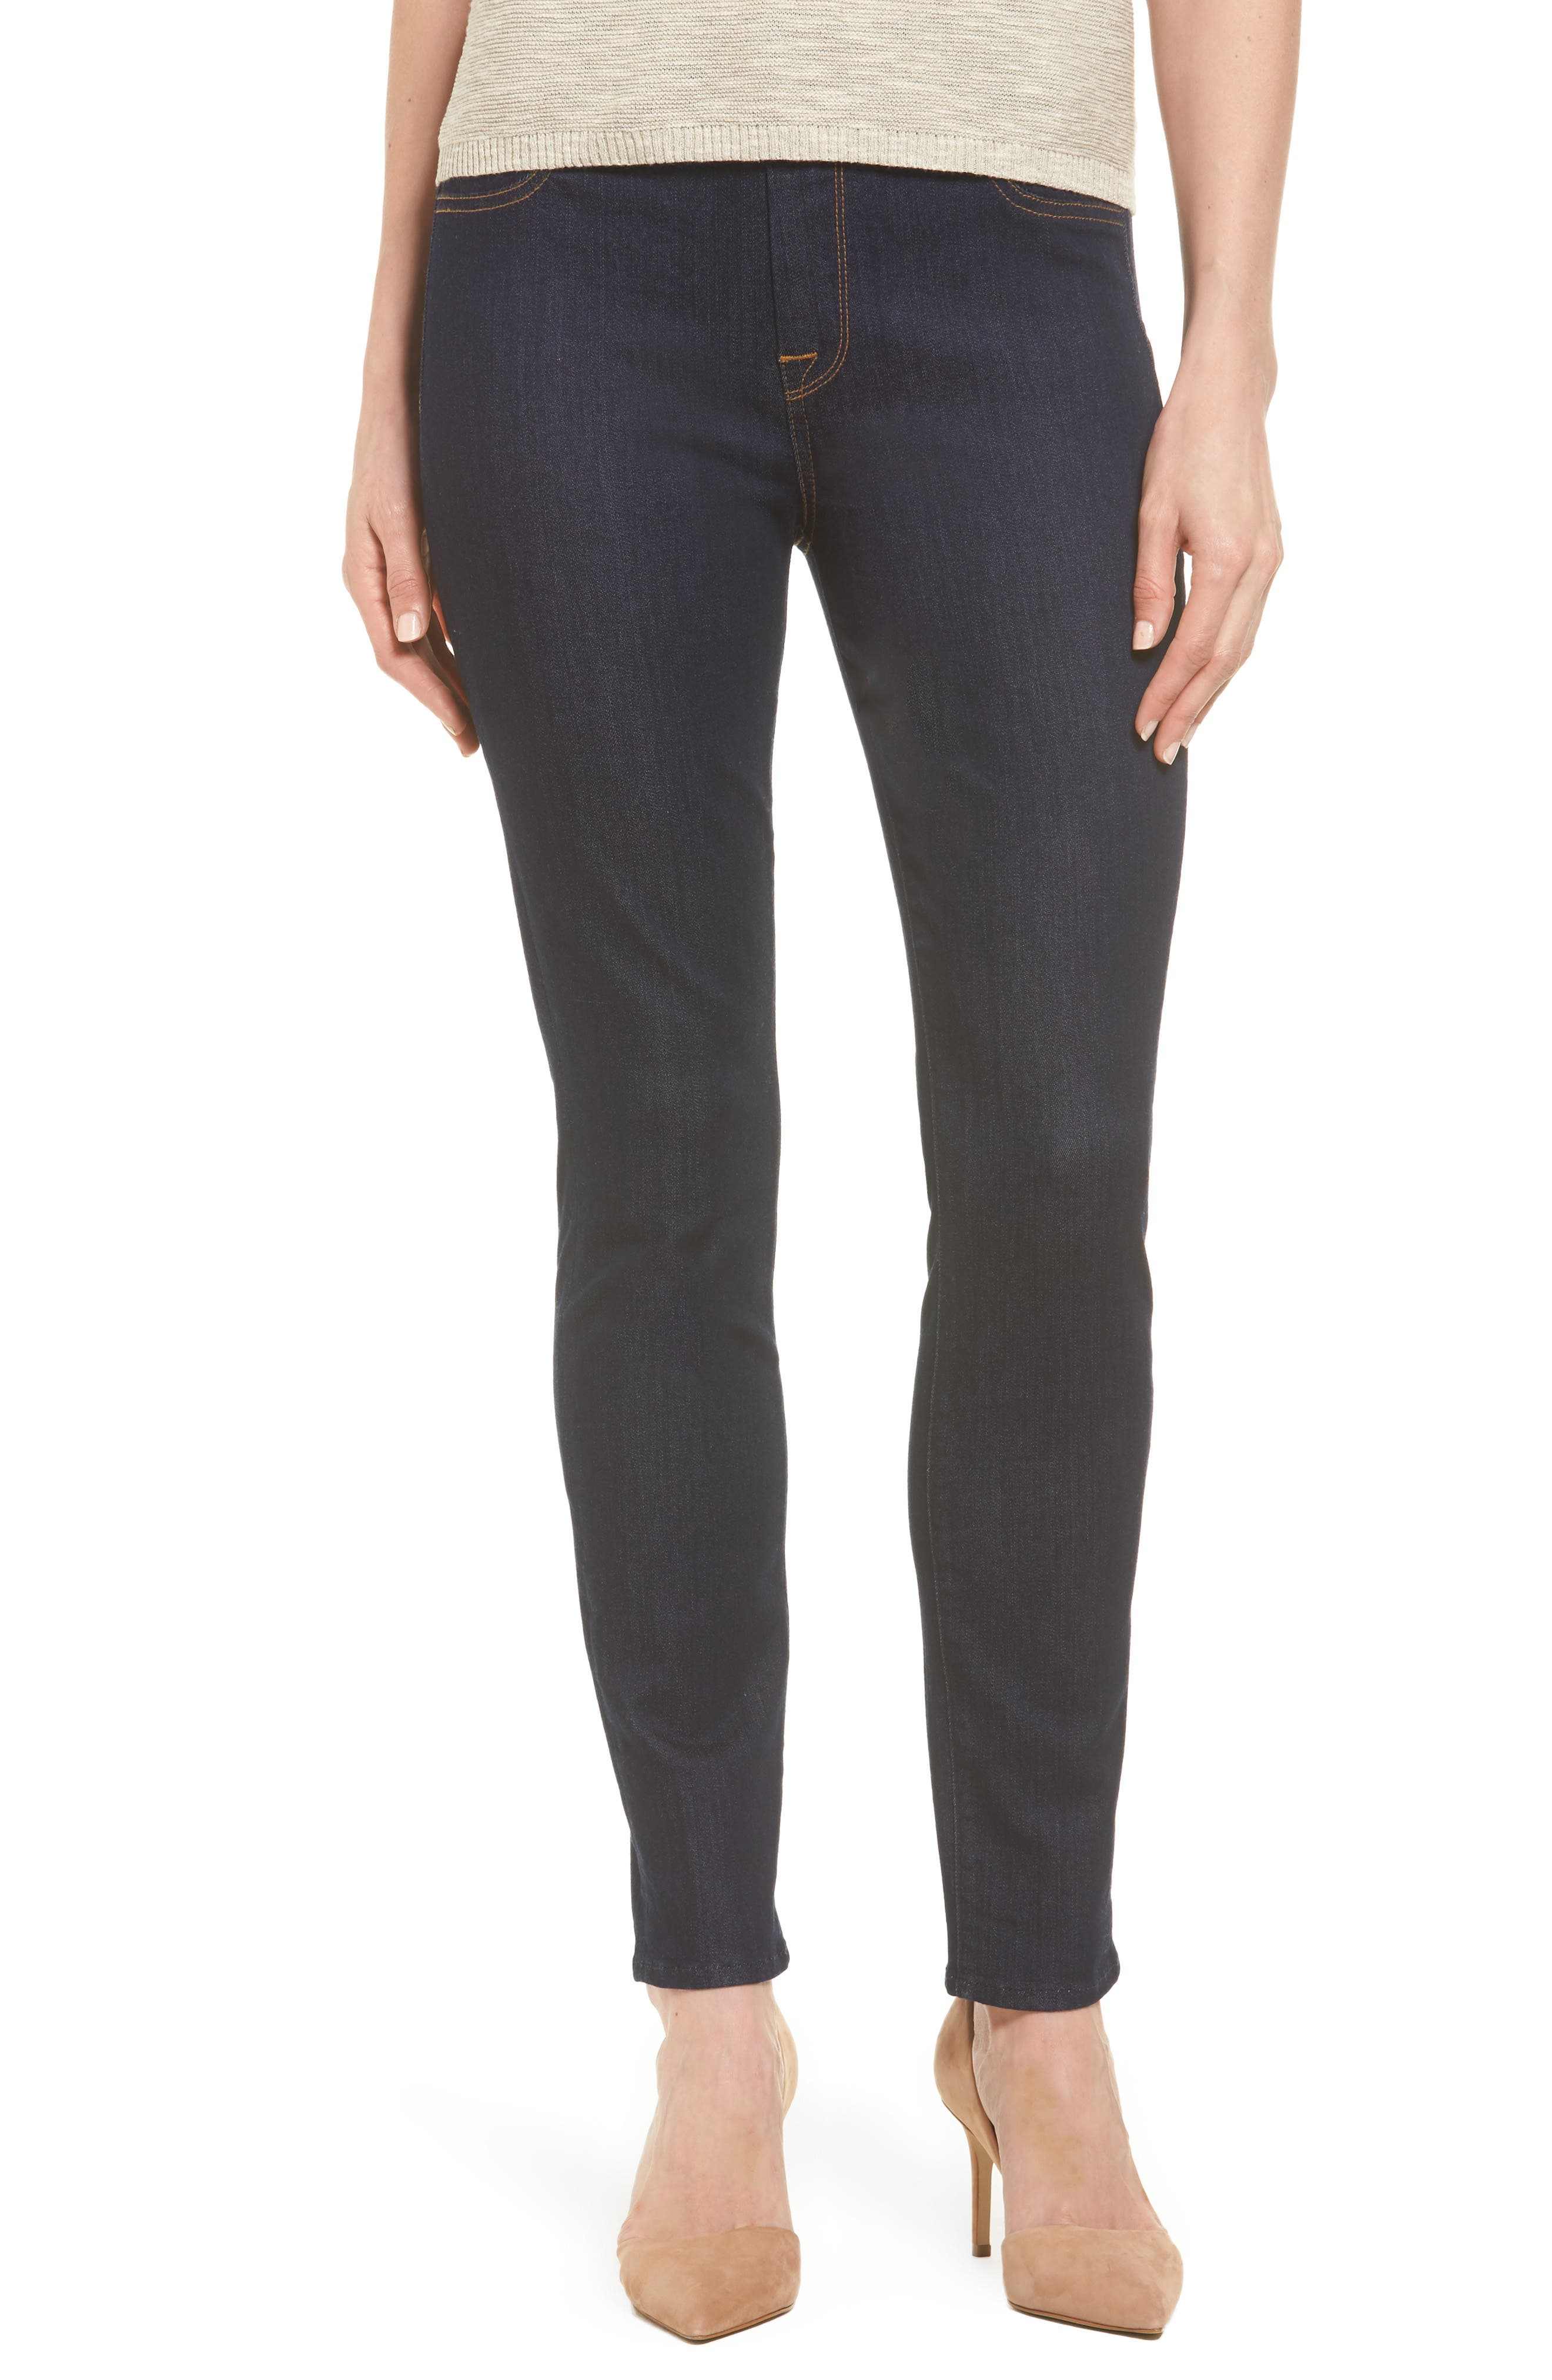 Image of Jen7 by 7 For All Mankind Comfort Pull-On Skinny Jeans